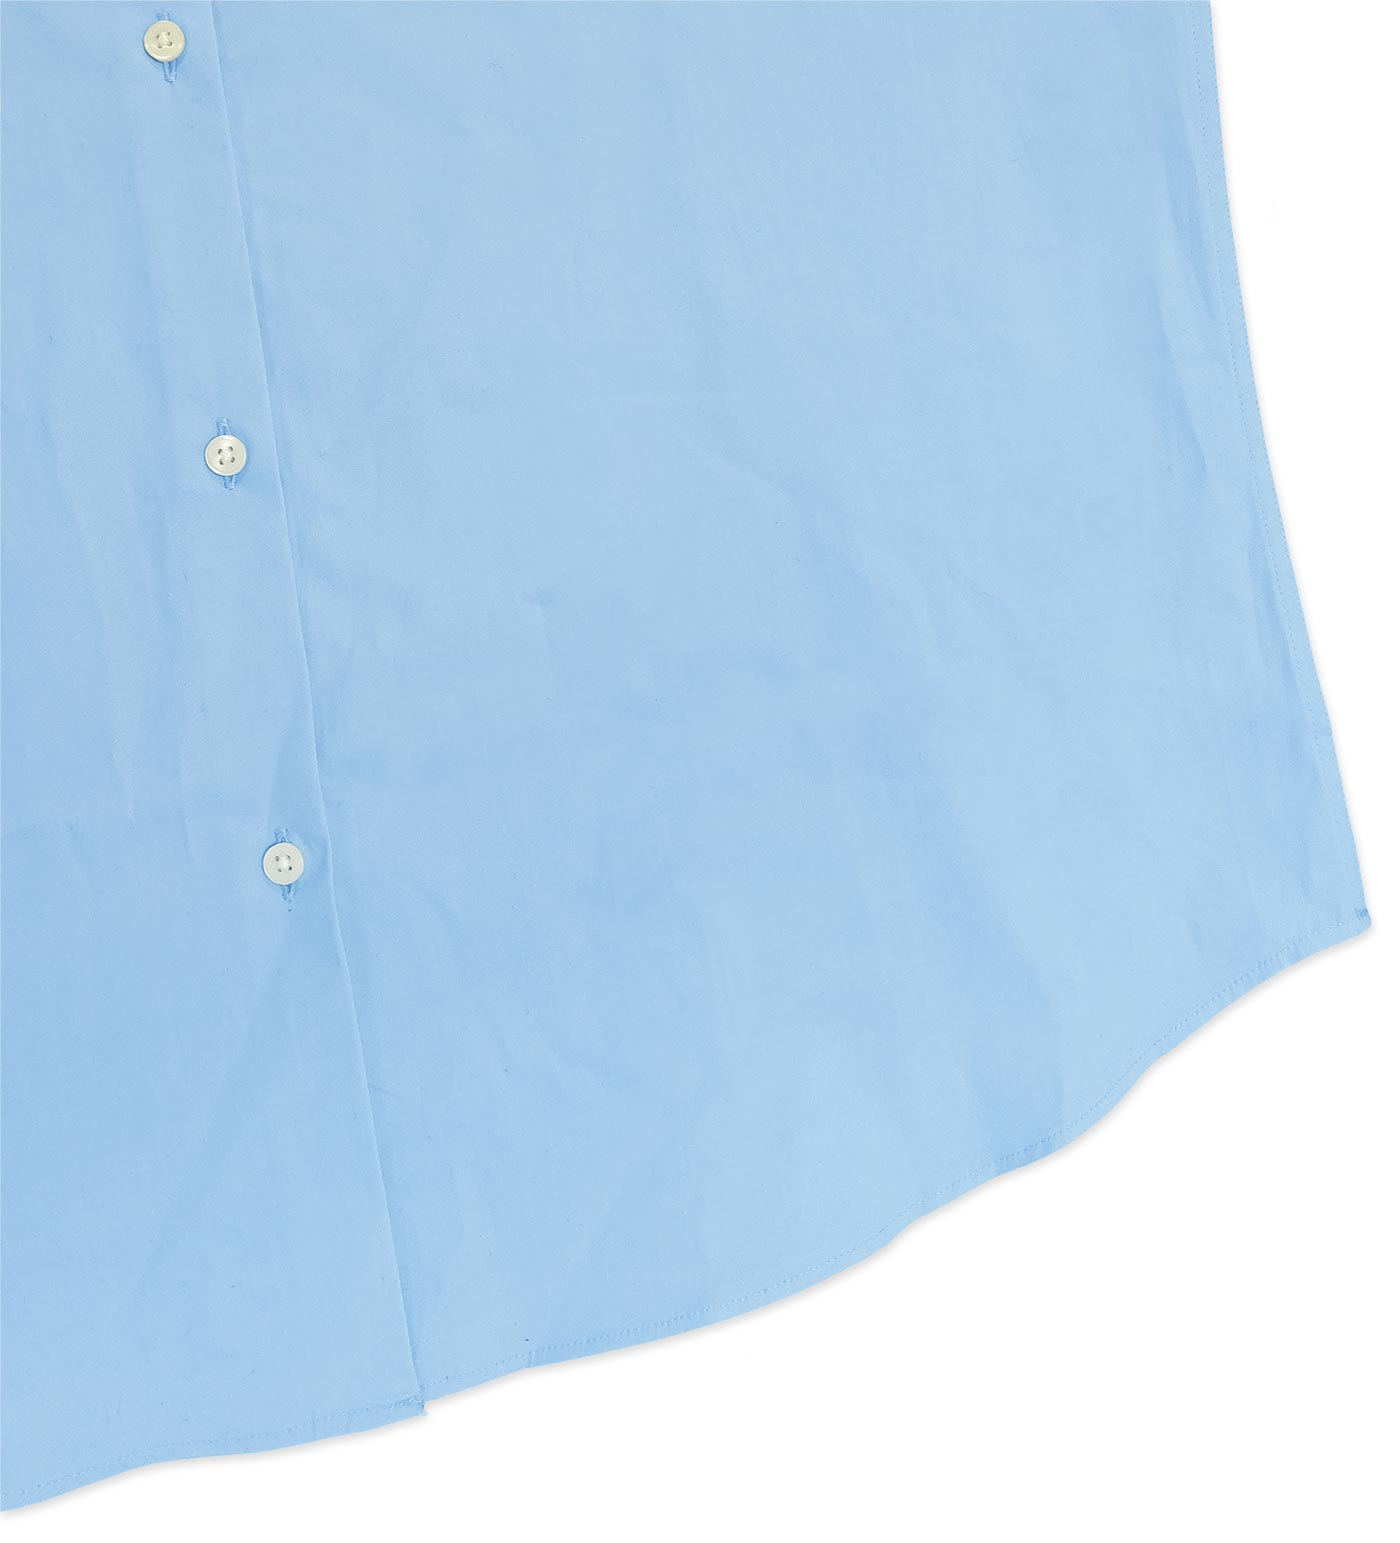 Light blue shirt with Zliide intelligent self-checkout tag attached to it